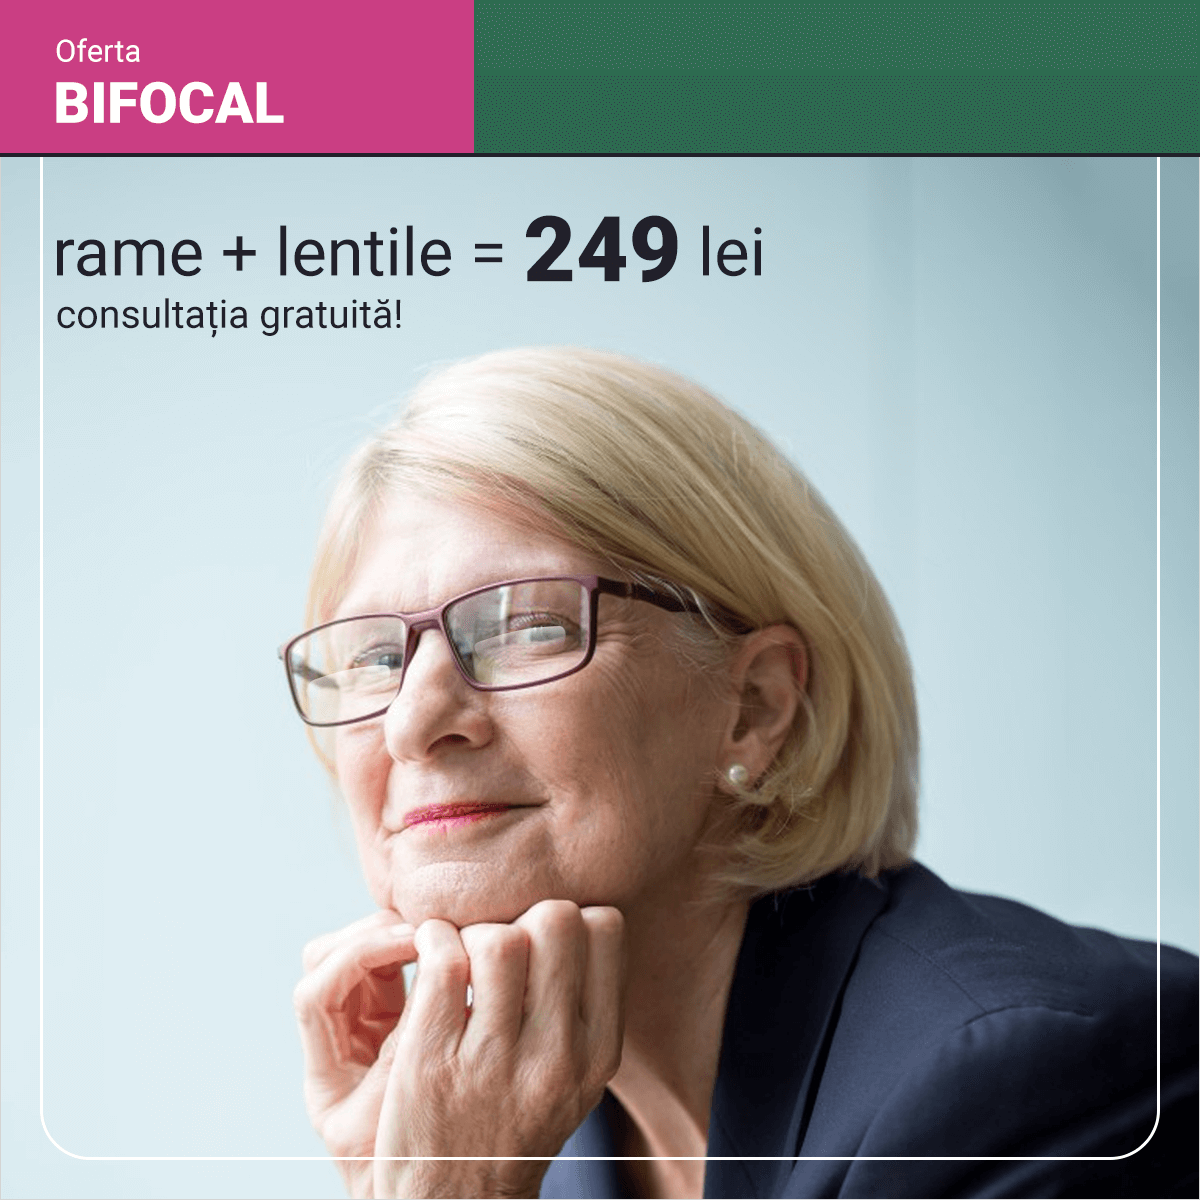 Oferta lentile bifocale - iris-optic